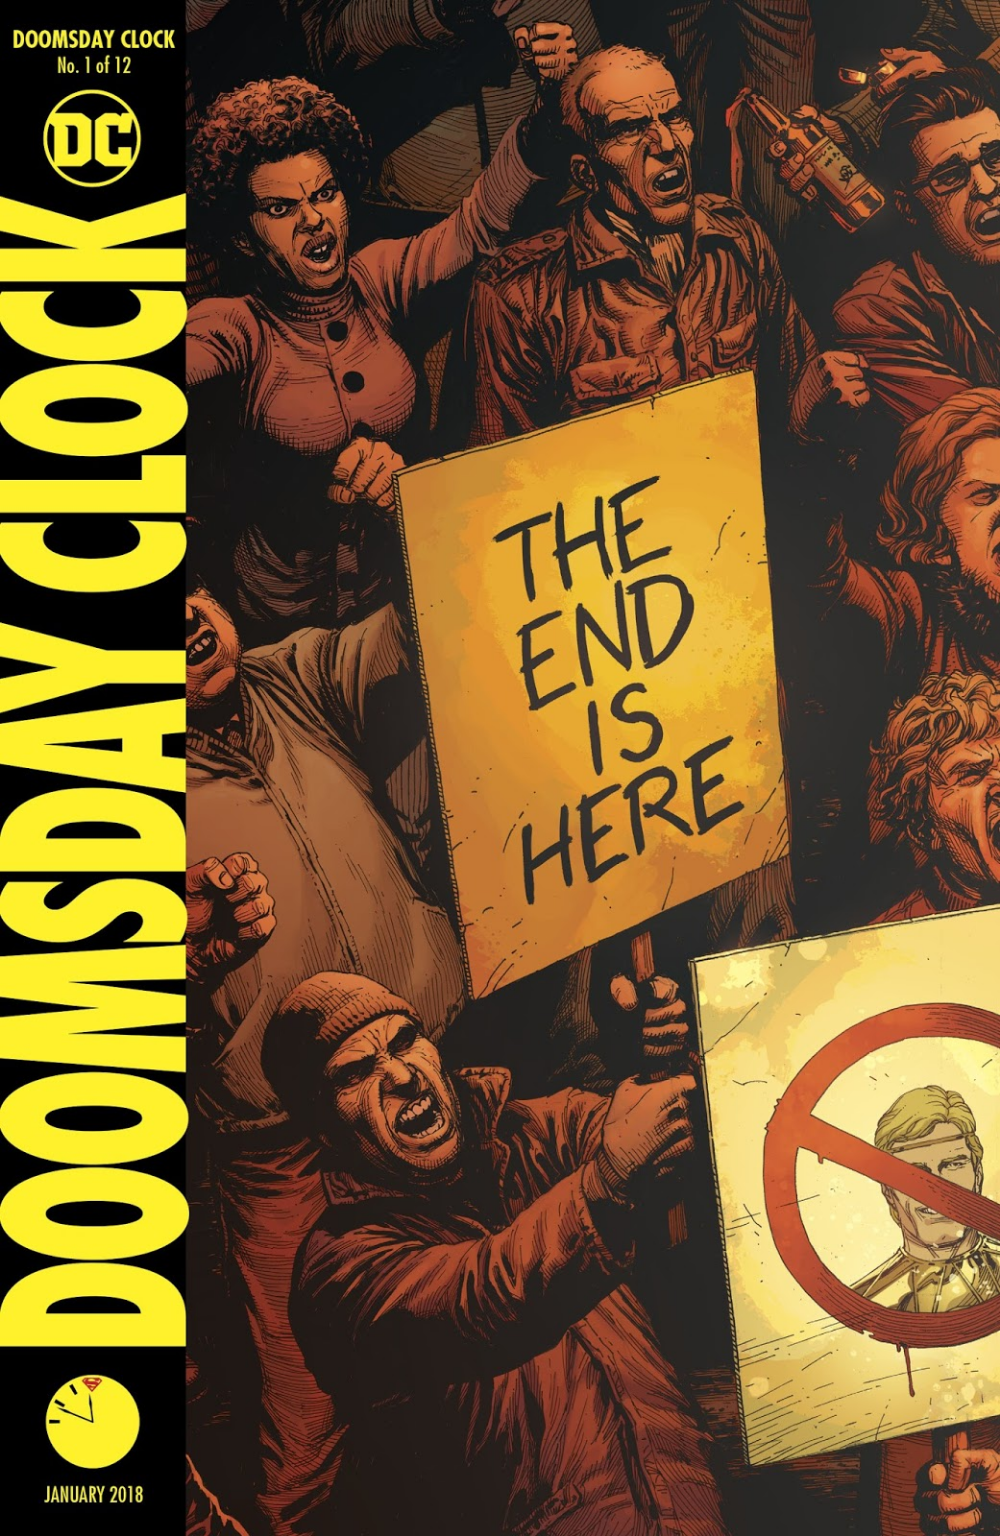 Doomsday Clock Issue 1 Read Doomsday Clock Issue 1 Comic Online In High Quality Doomsday Clock Doomsday Comics